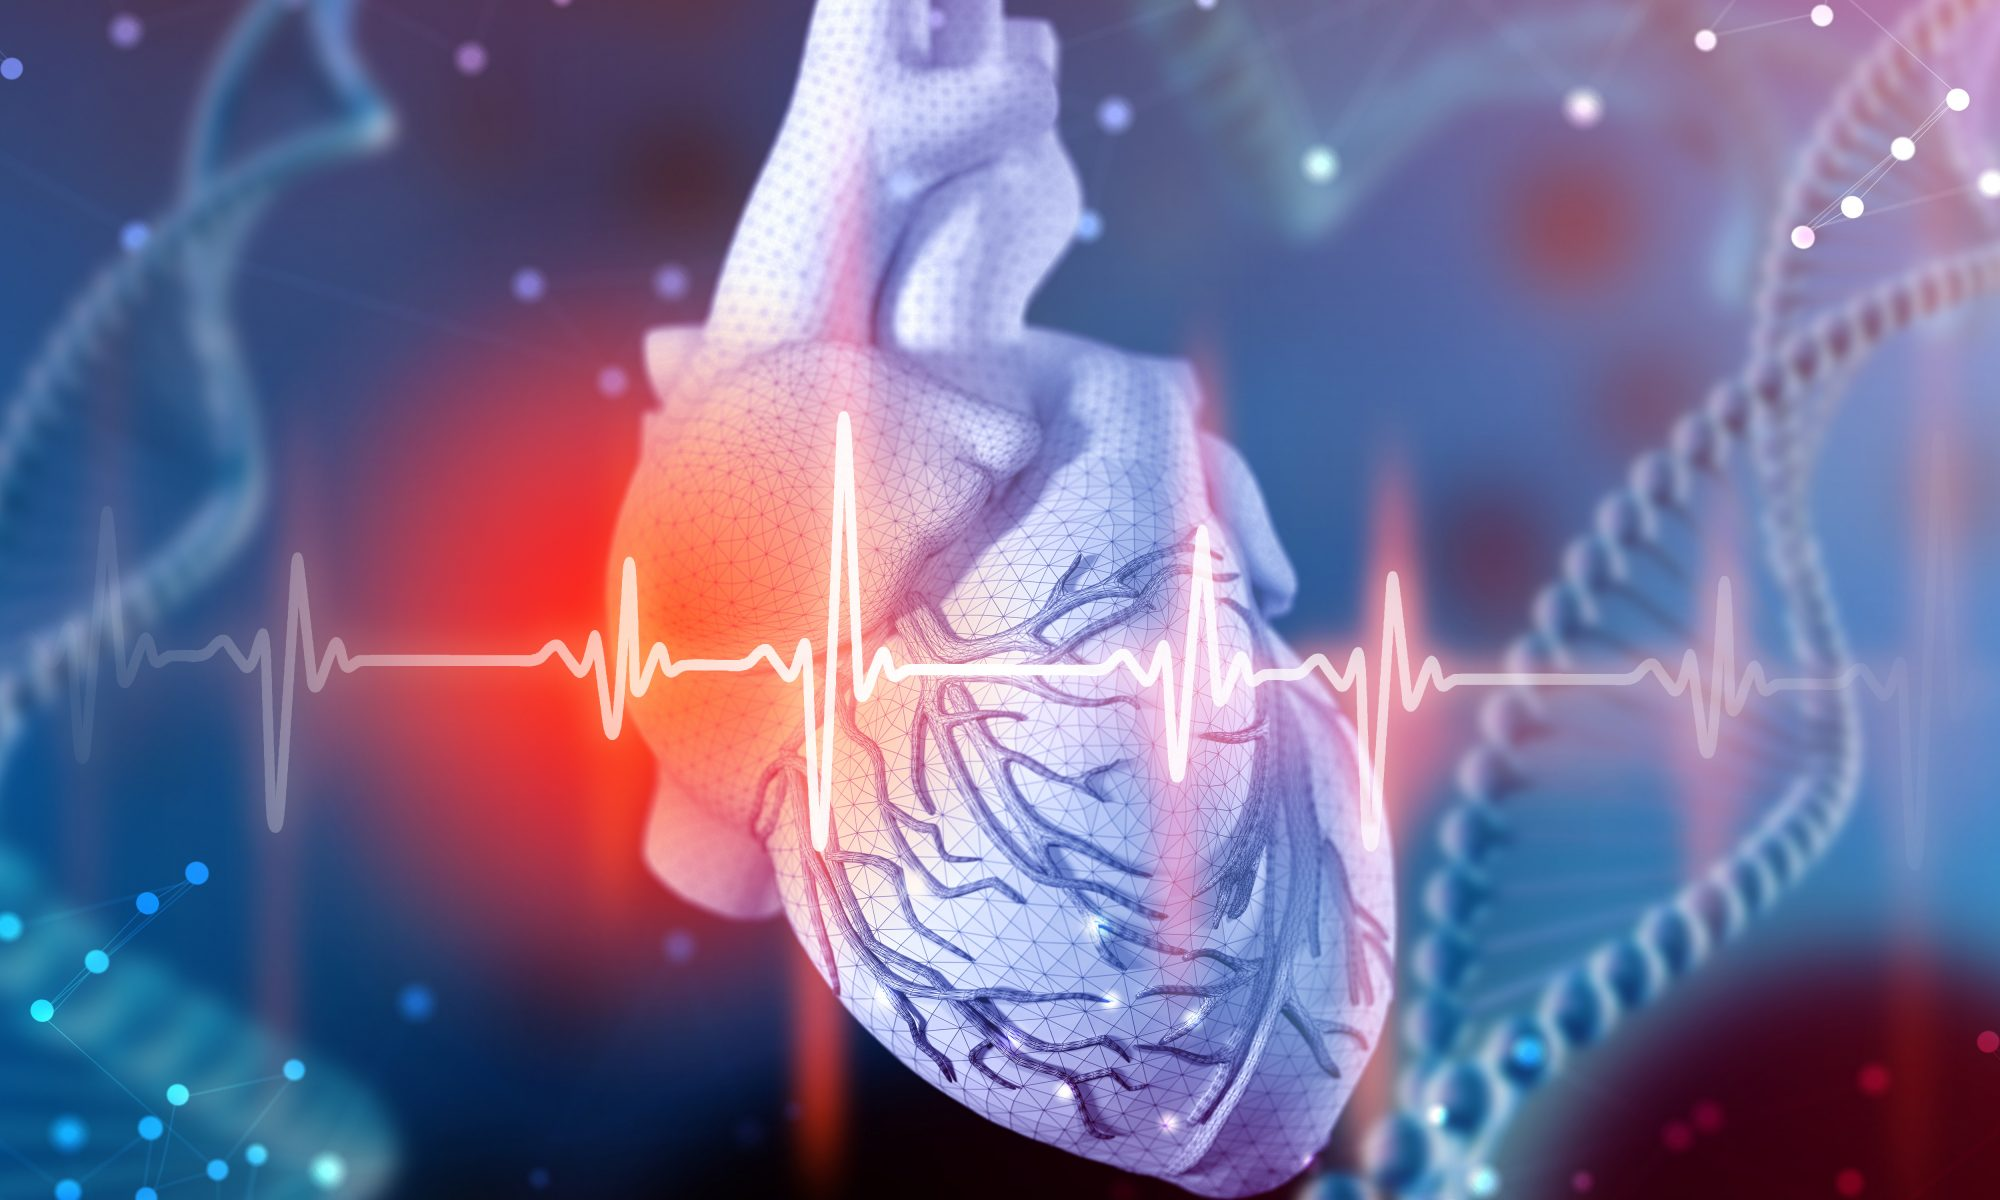 Hybrid Surgery Centers: The Cardiology Shift